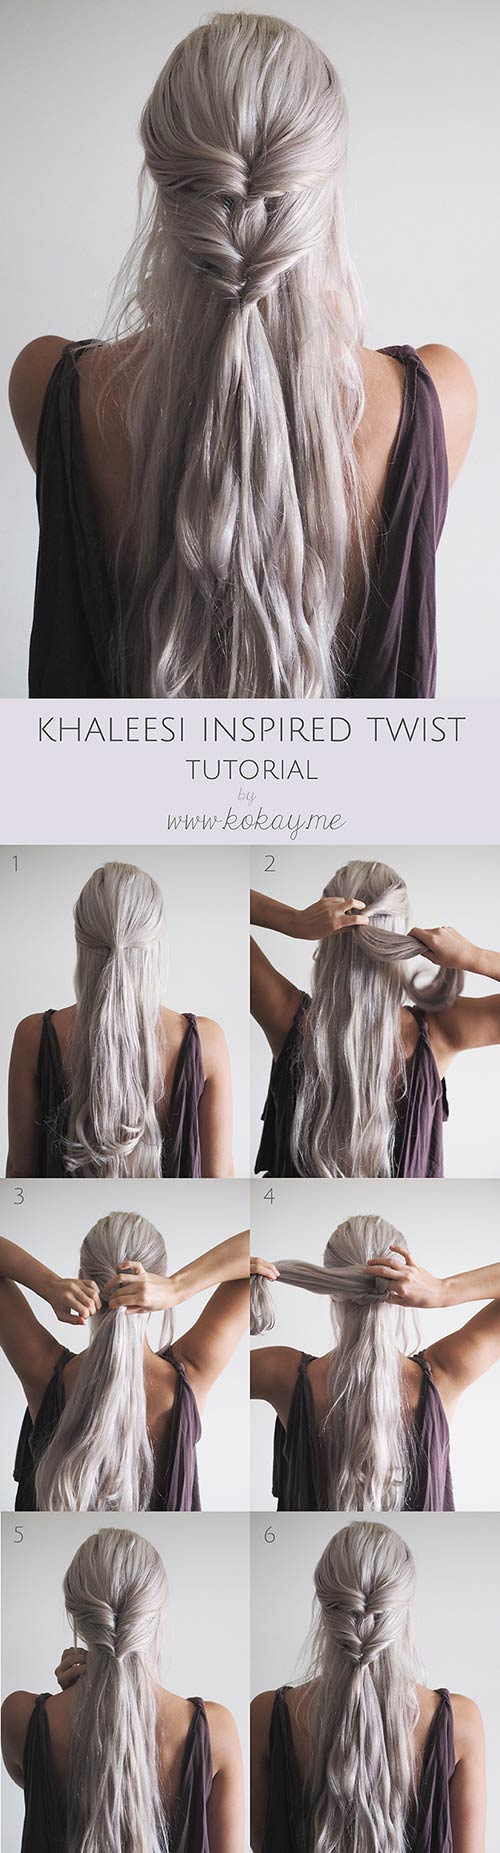 4. Khaleesi Inspired Twist